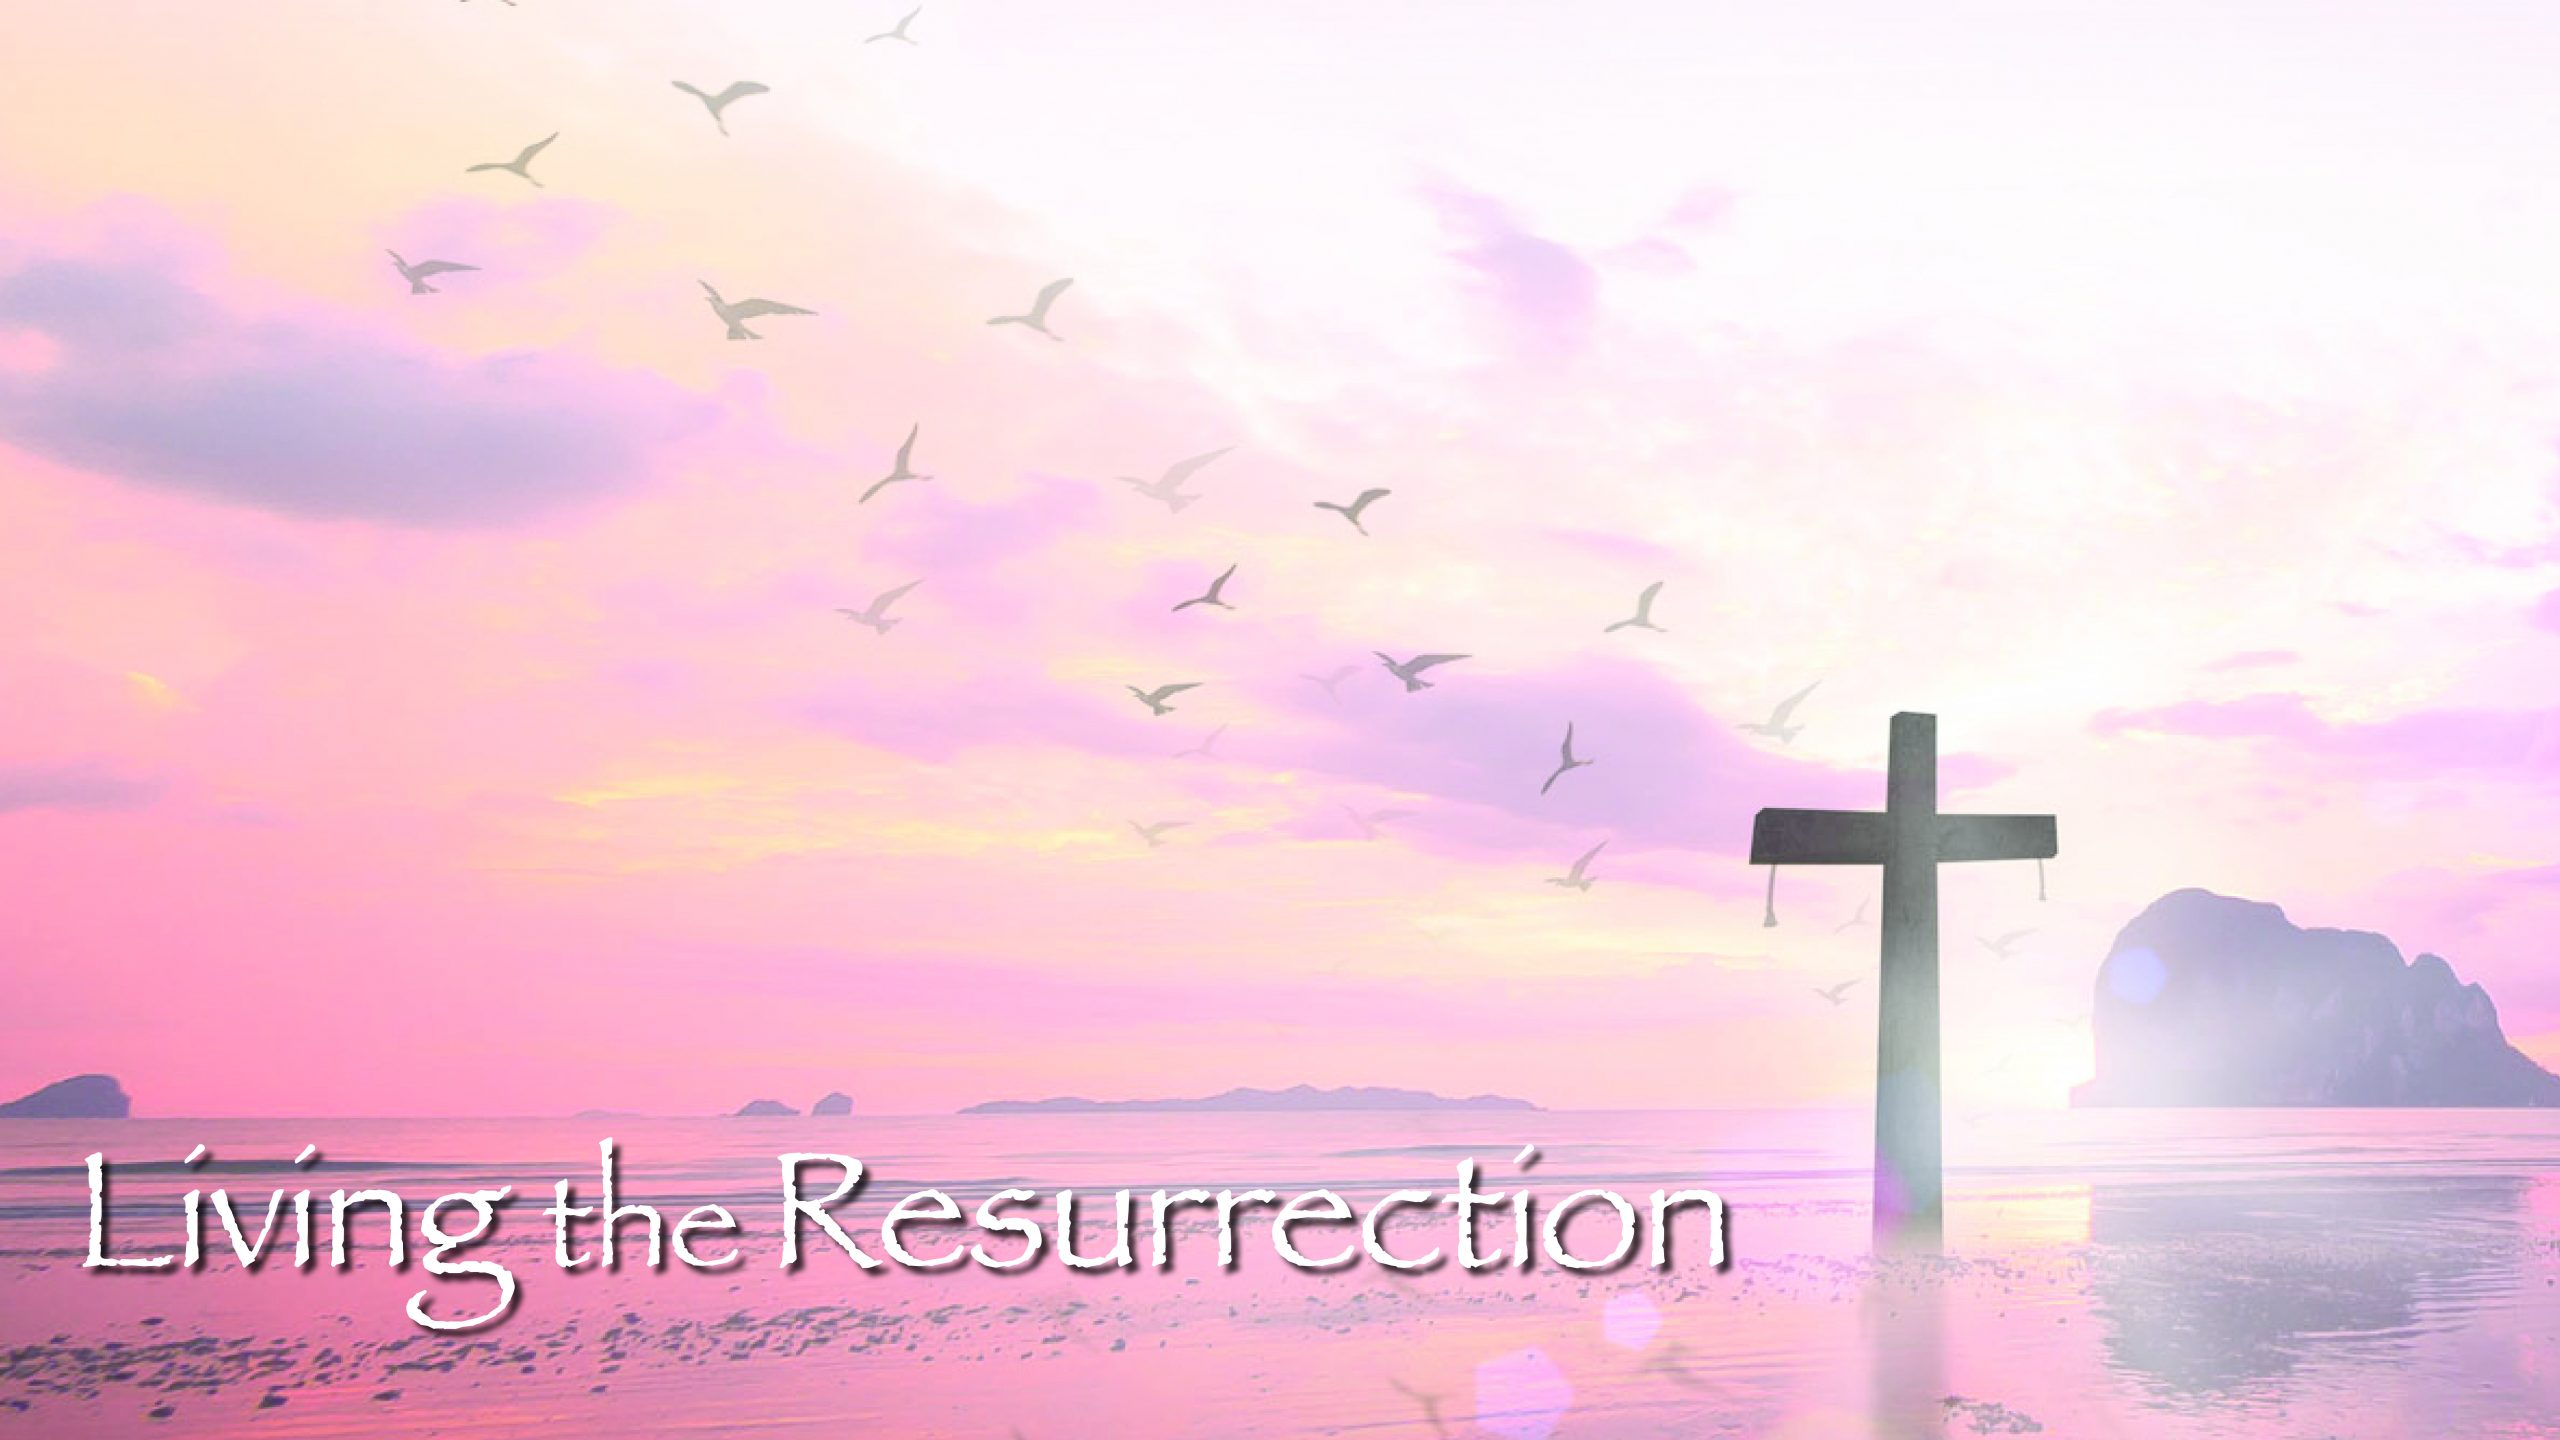 Living the Resurrection: out of breath